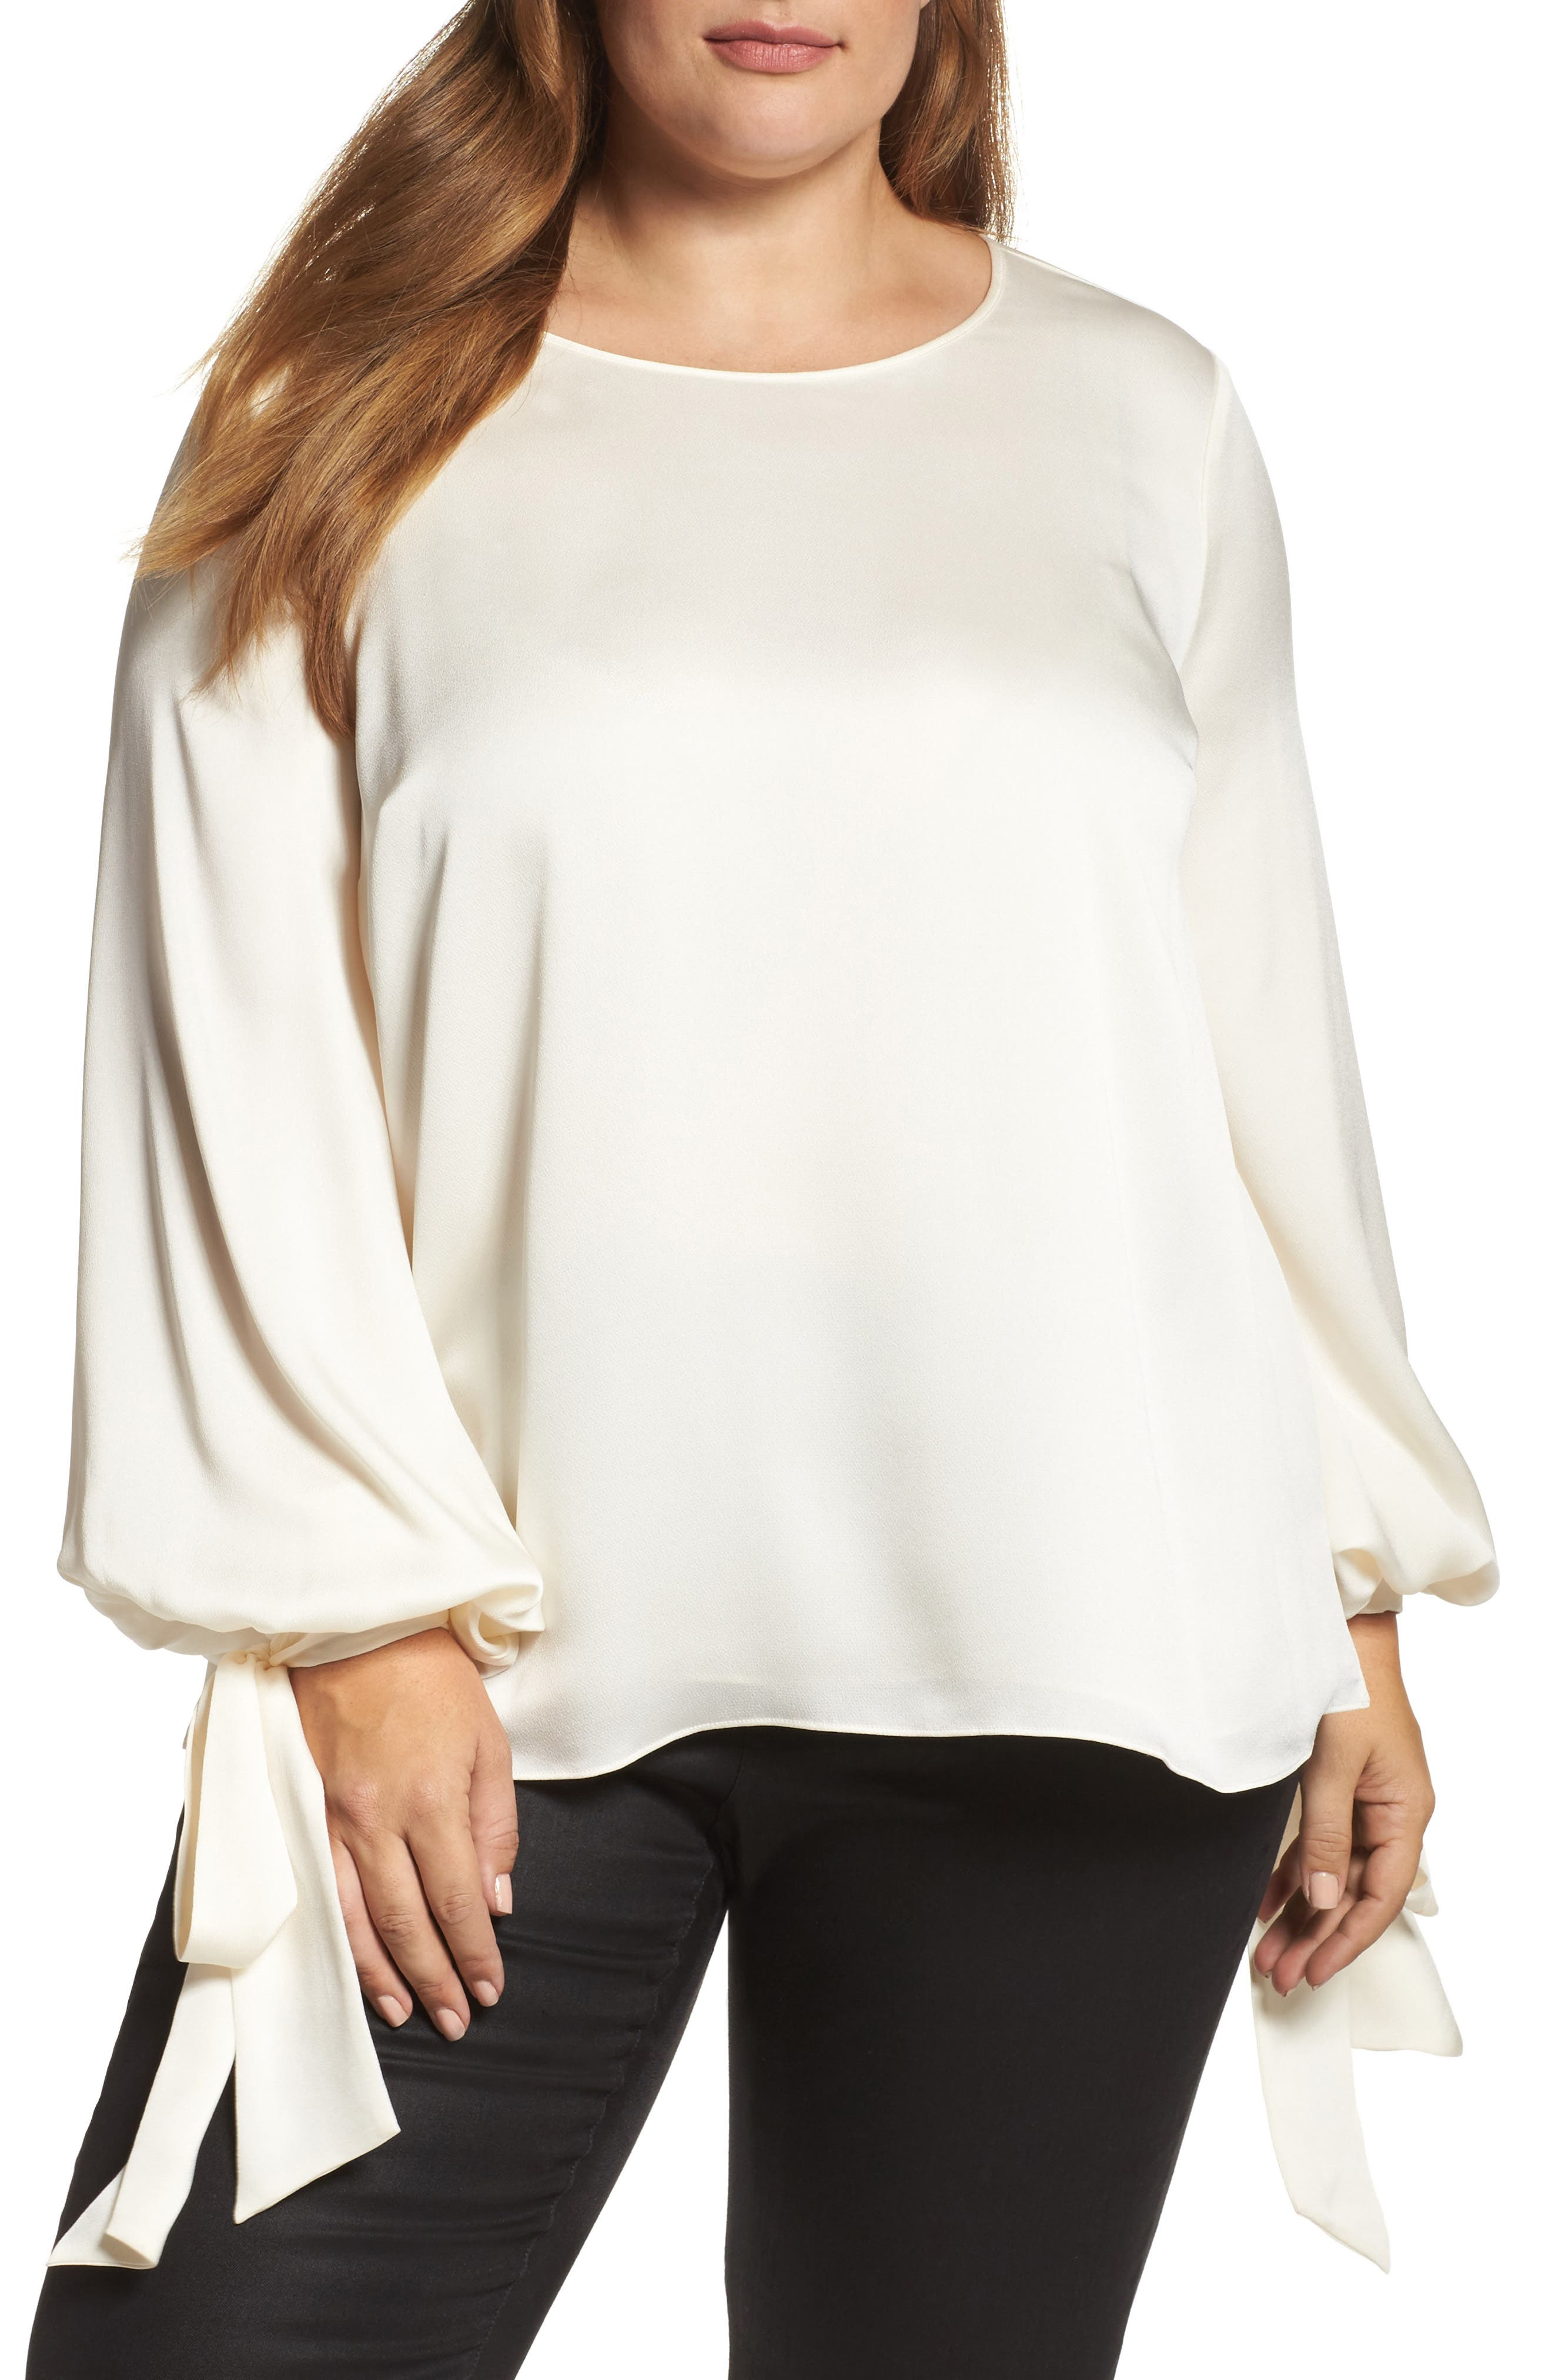 Main Image - Vince Camuto Tie Cuff Bubble Sleeve Blouse (Plus Size)